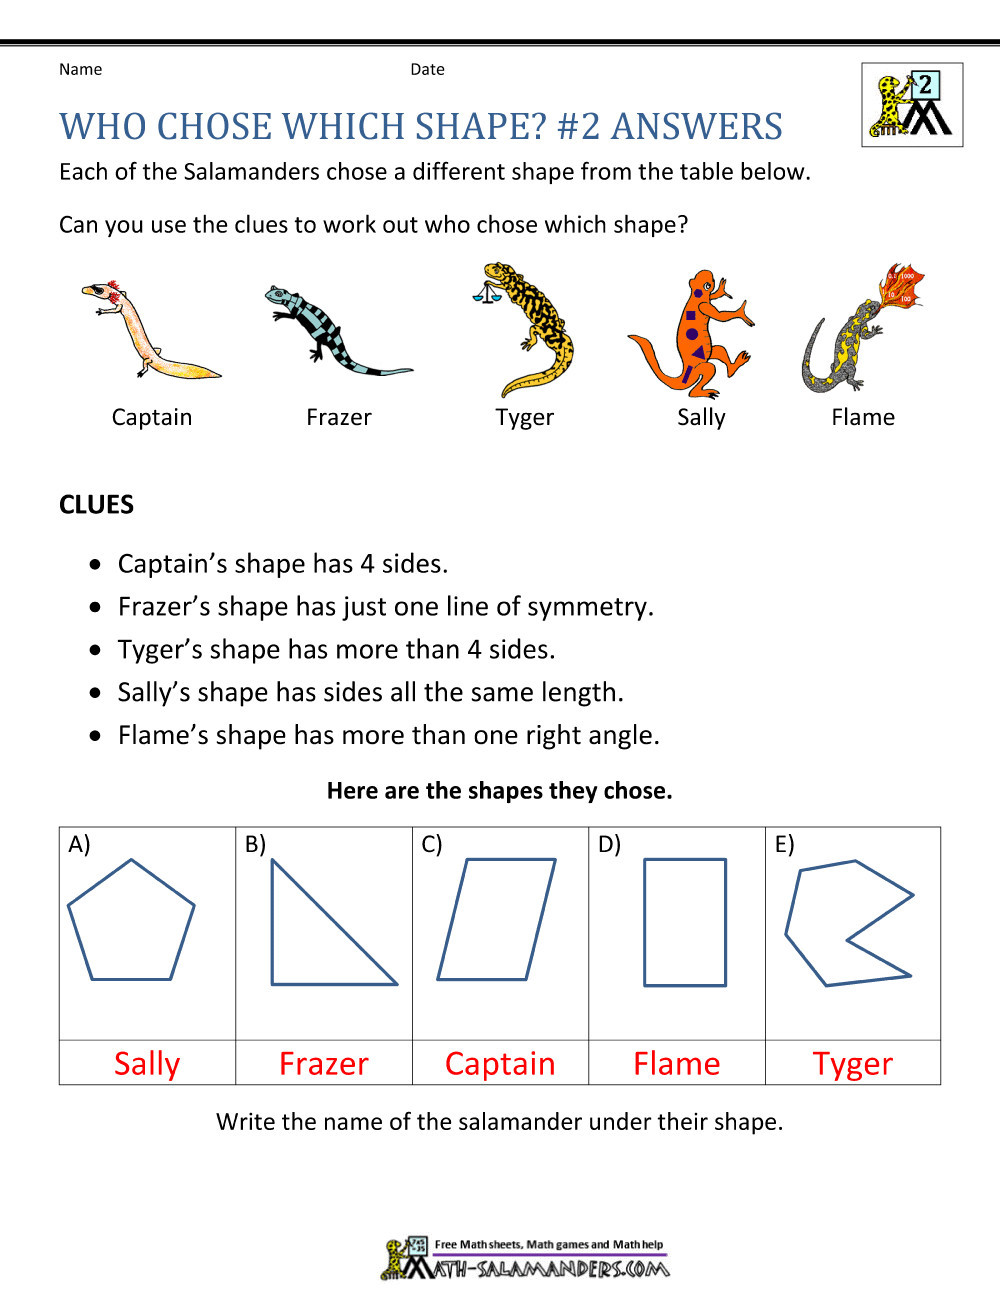 Fractions Worksheets First Grade 5 Free Math Worksheets First Grade 1 Word Problems Fractions